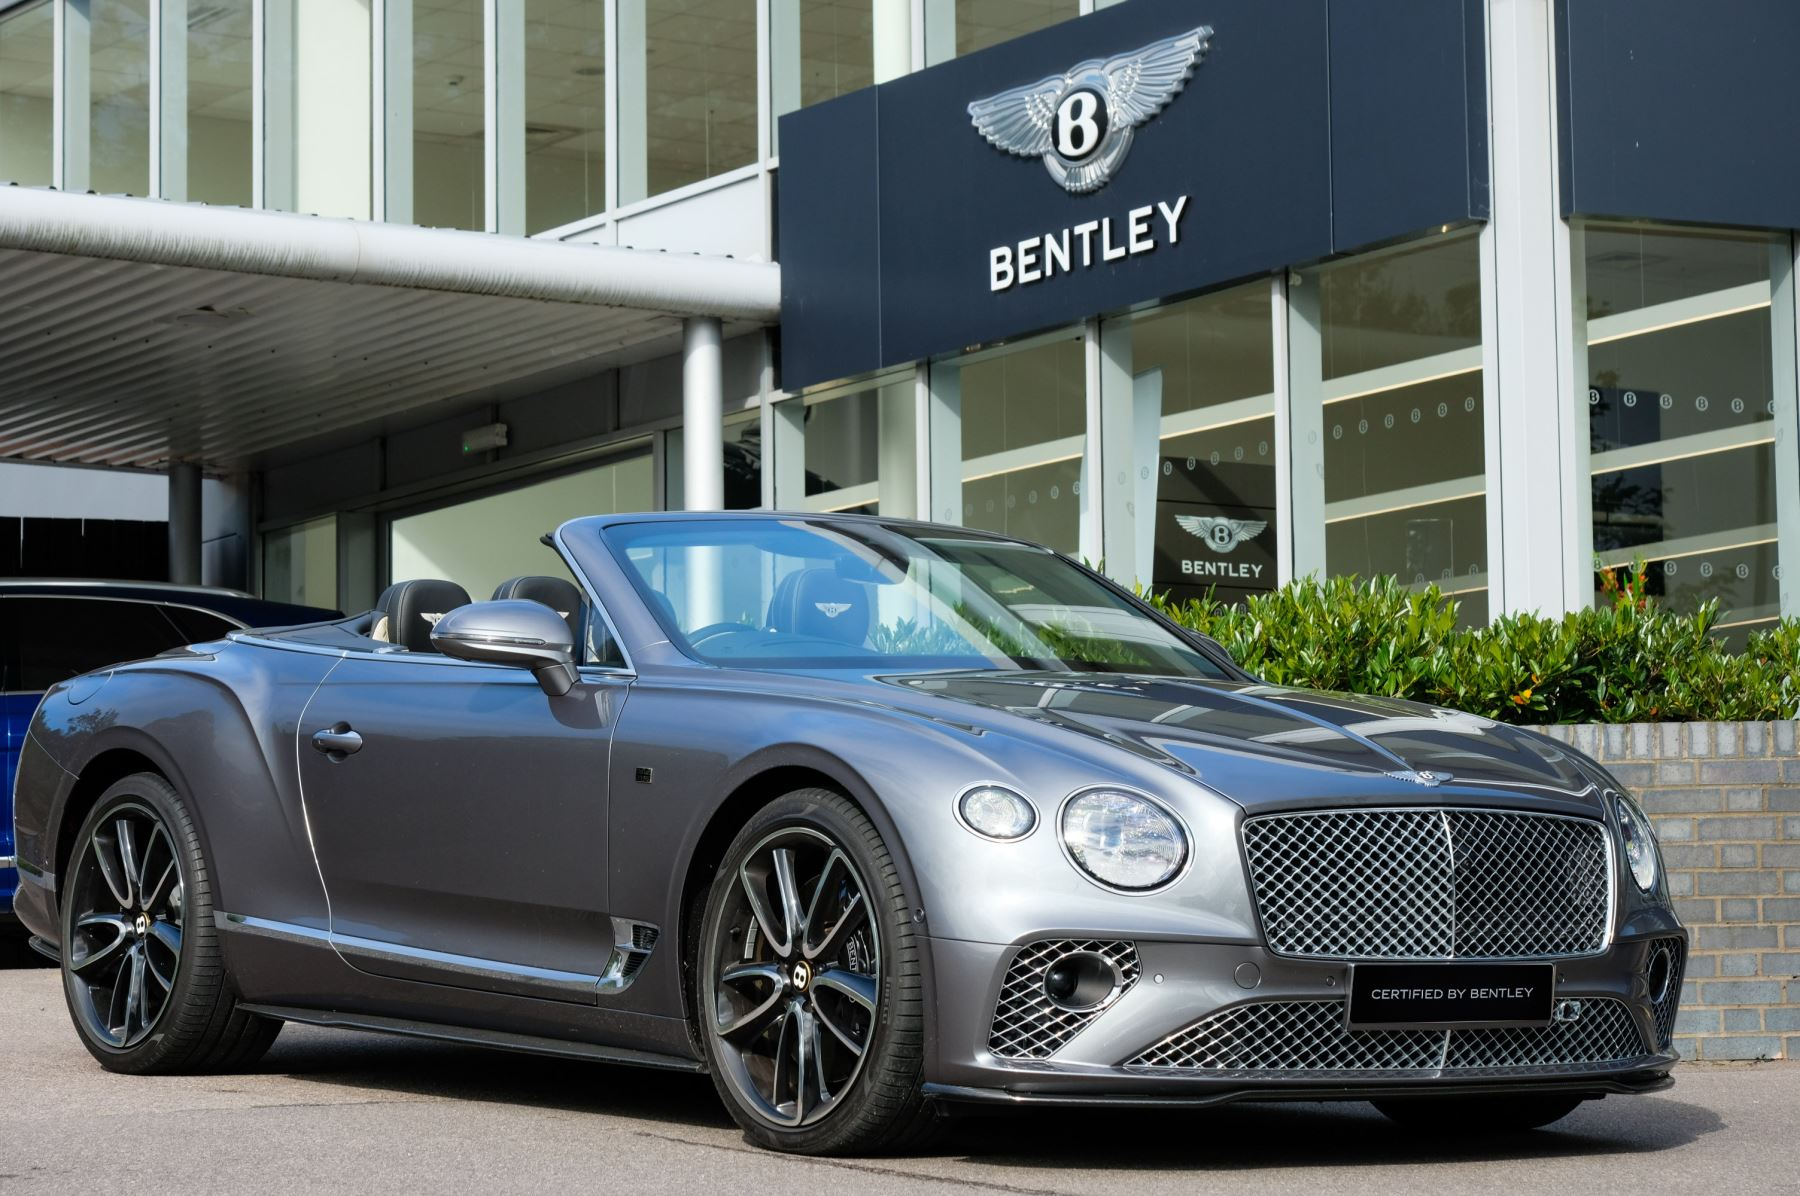 Bentley Continental GTC 6.0 W12 - 1st Edition - Centenary Specification Automatic 2 door Convertible